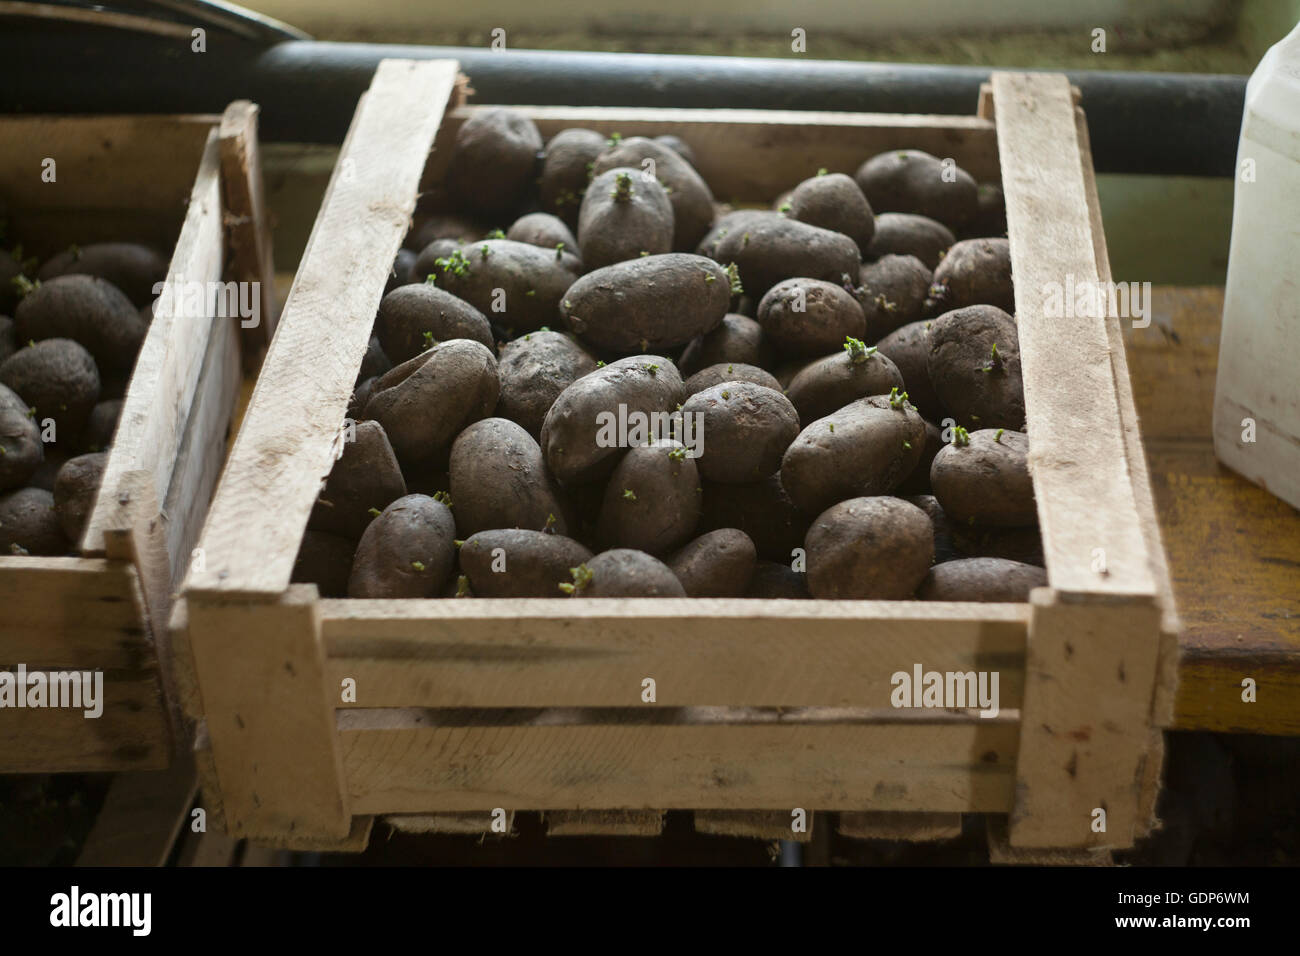 Crate of seedling potatoes in shed - Stock Image